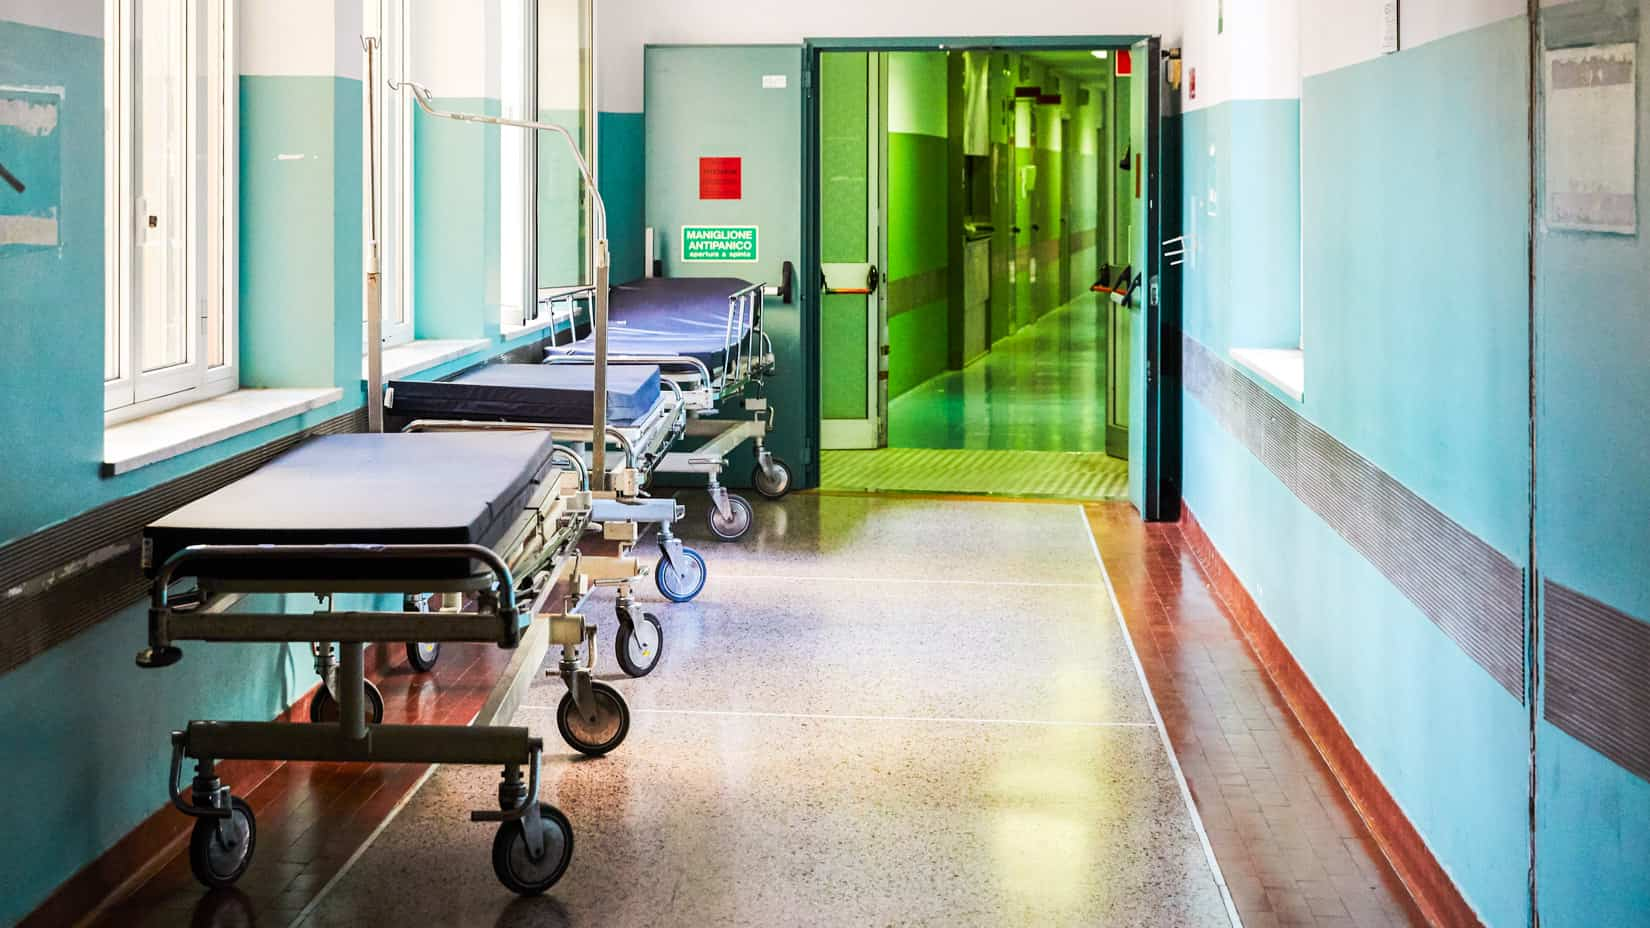 A wing of a hospital with beds.